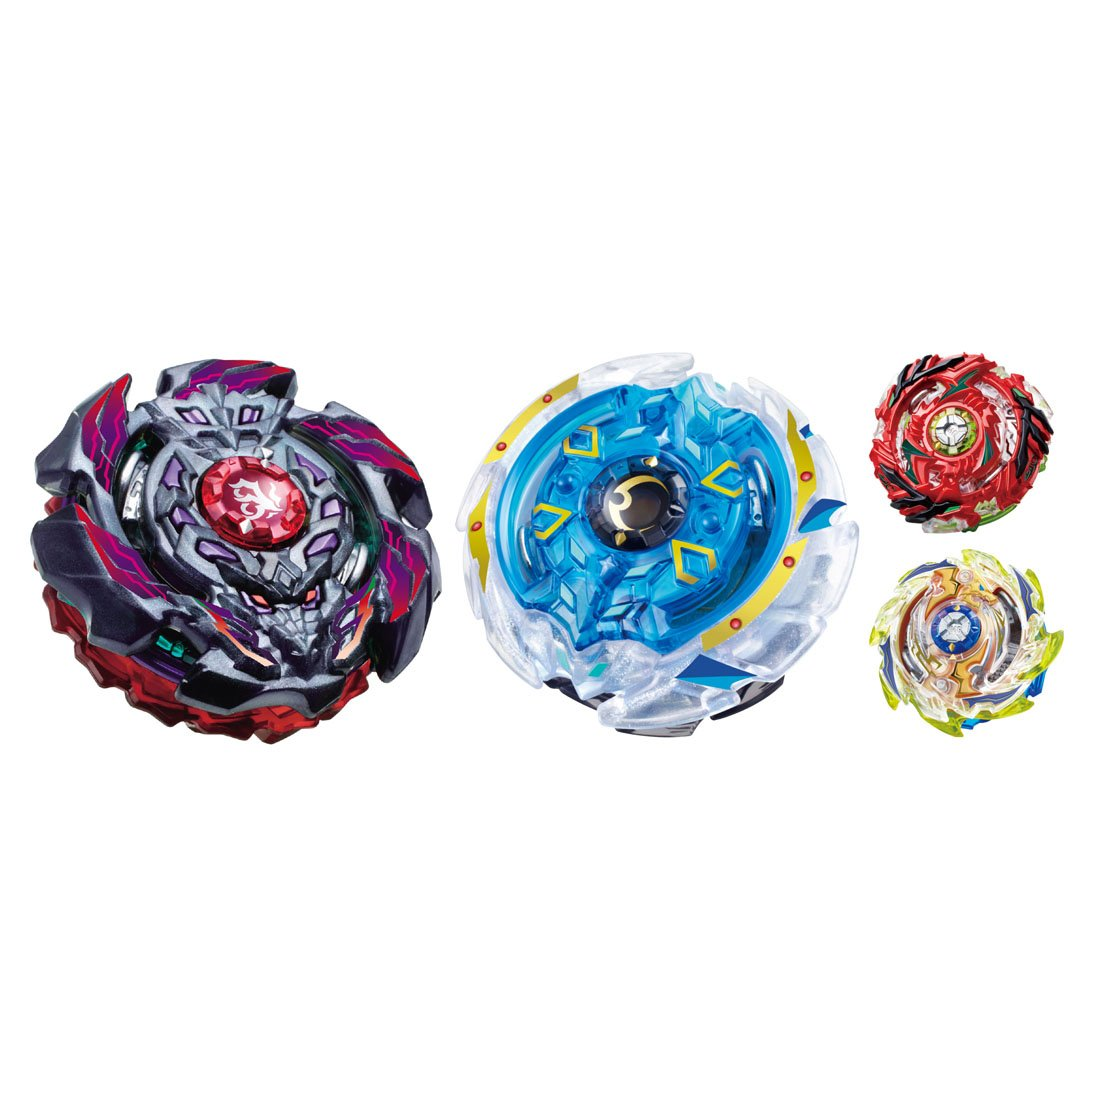 Takara Tomy B-98 Beyblade Burst God Customize Booster Spin Tops Takaratomy